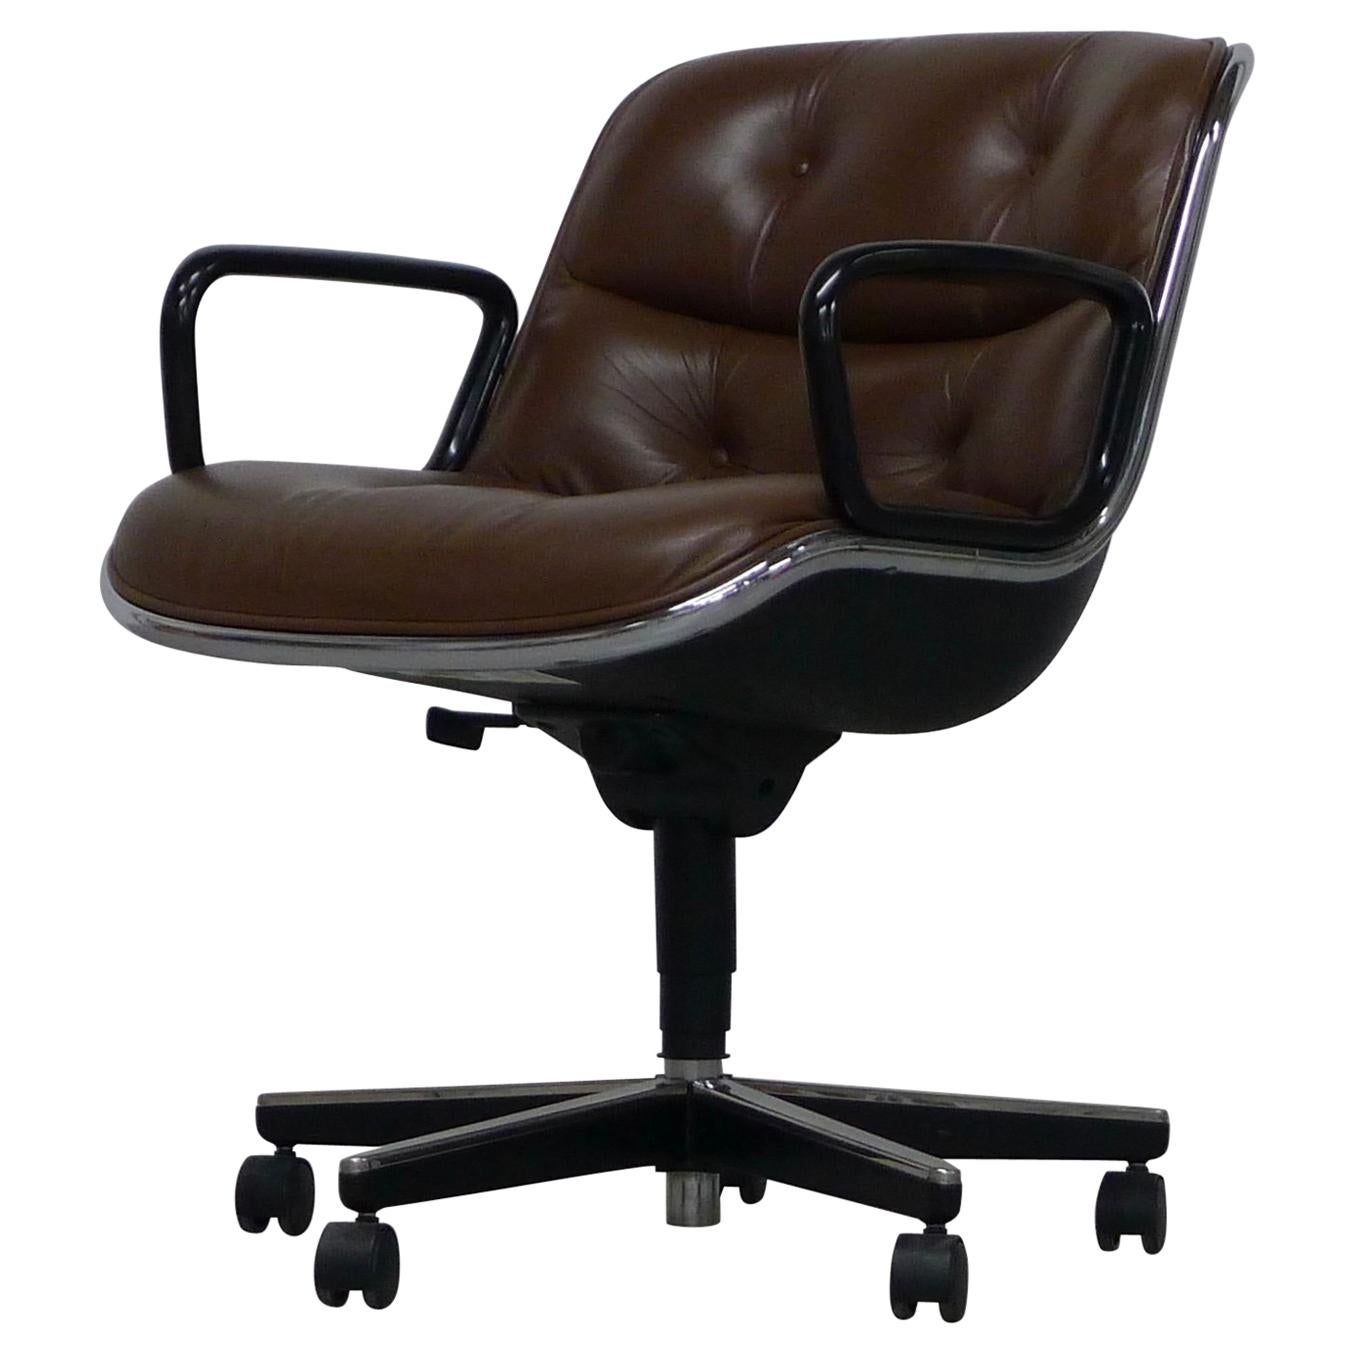 Charles Pollock Office Chairs In Brown Leather, Knoll Labels For Sale